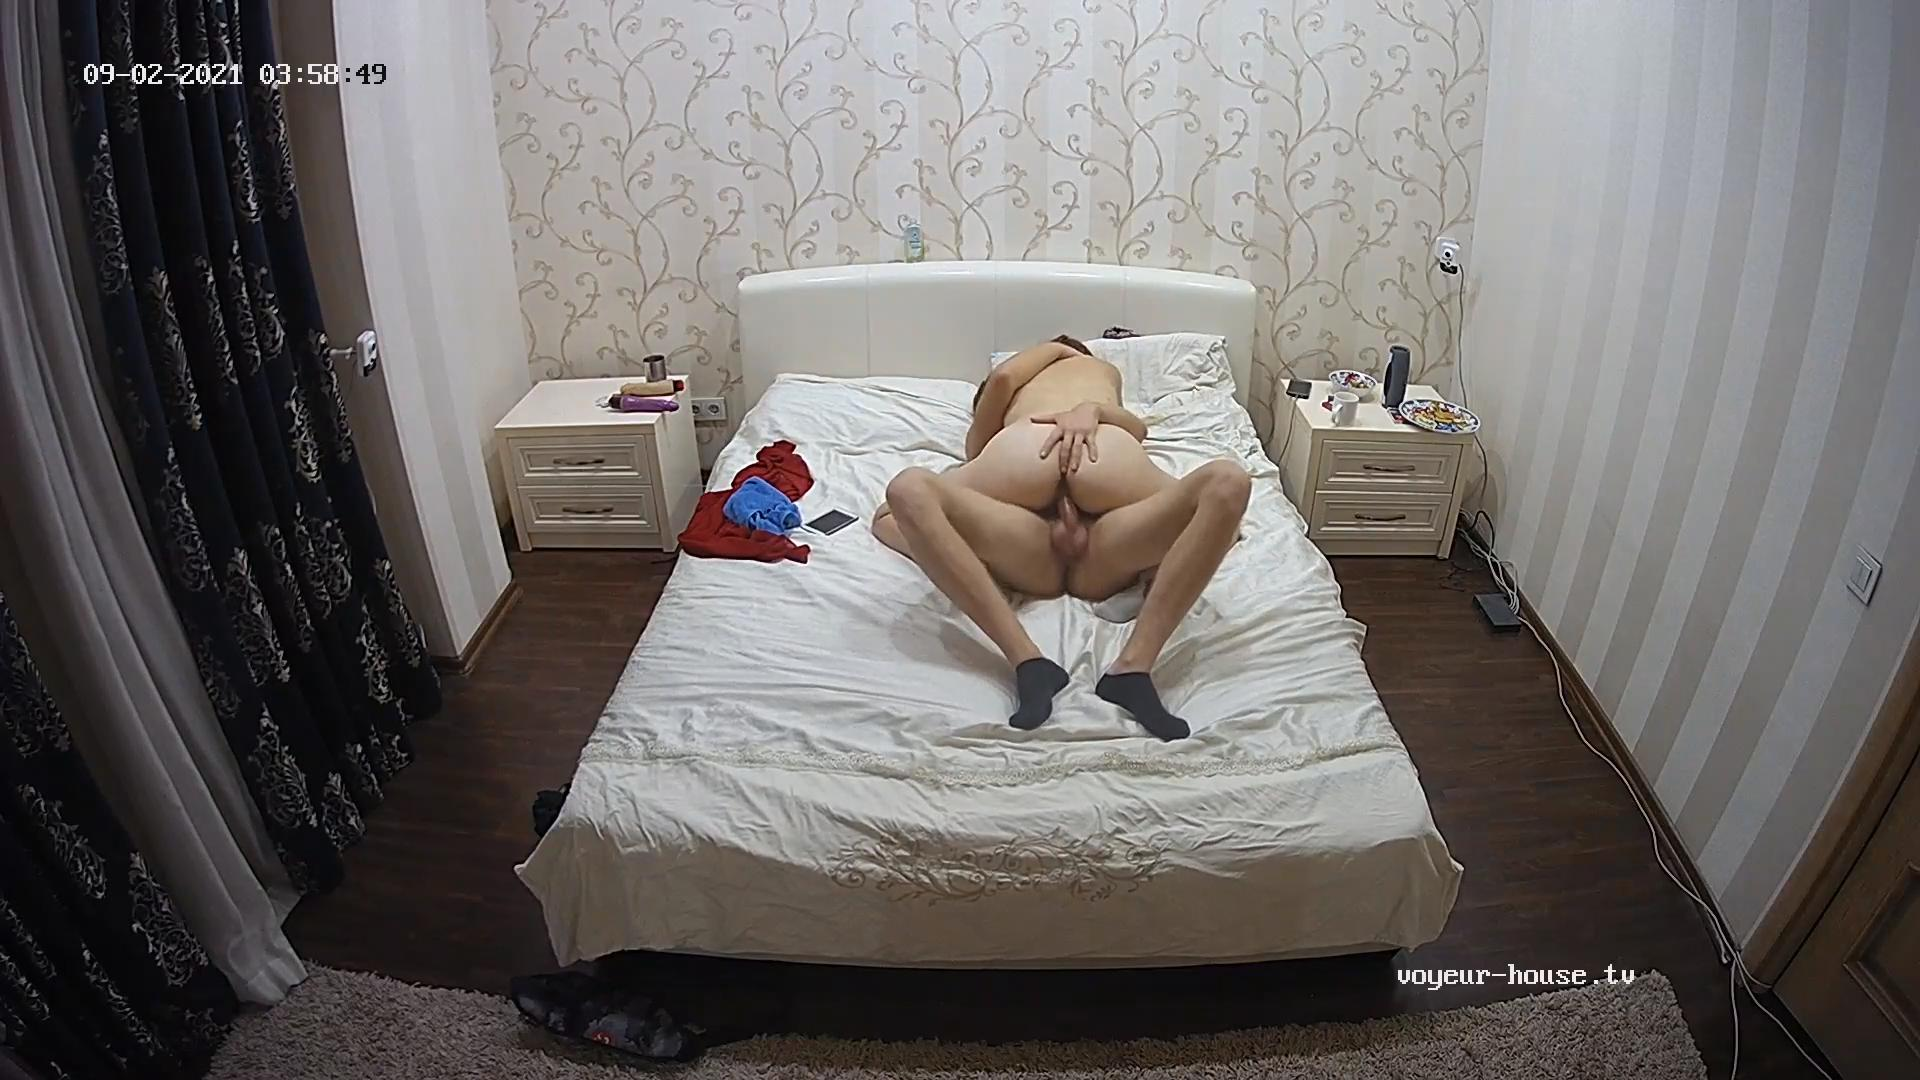 Archi jerking then sex with Kataleya 2 Sep 2021 cam 2